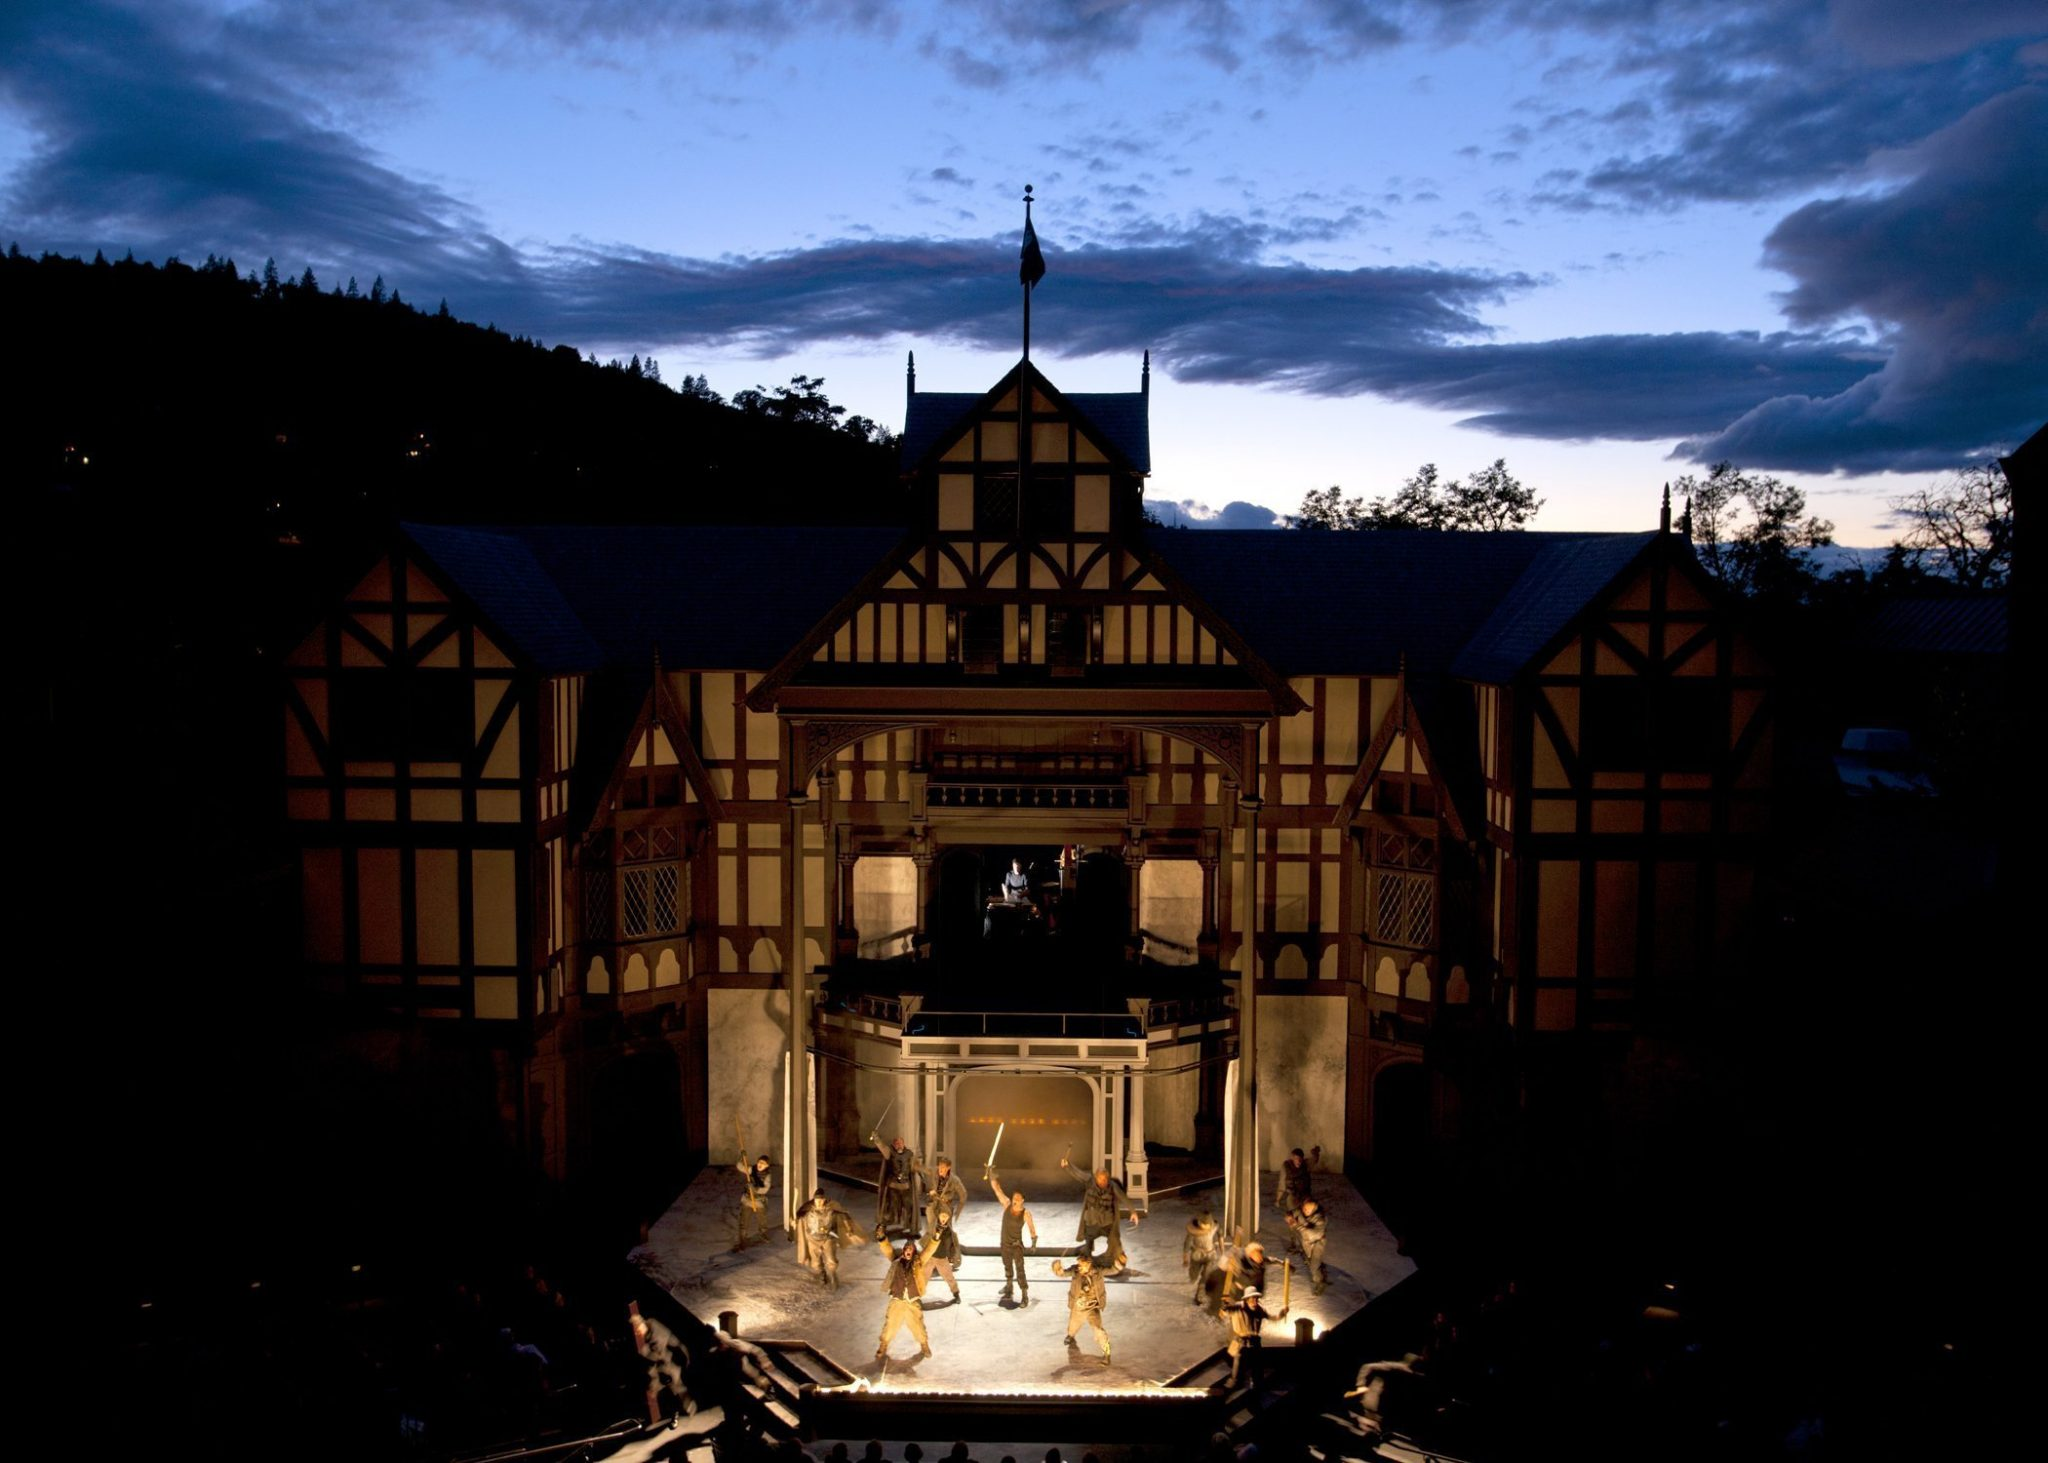 Oregon-Shakespeare-Festival-Elizabethan-Stage-Ashland